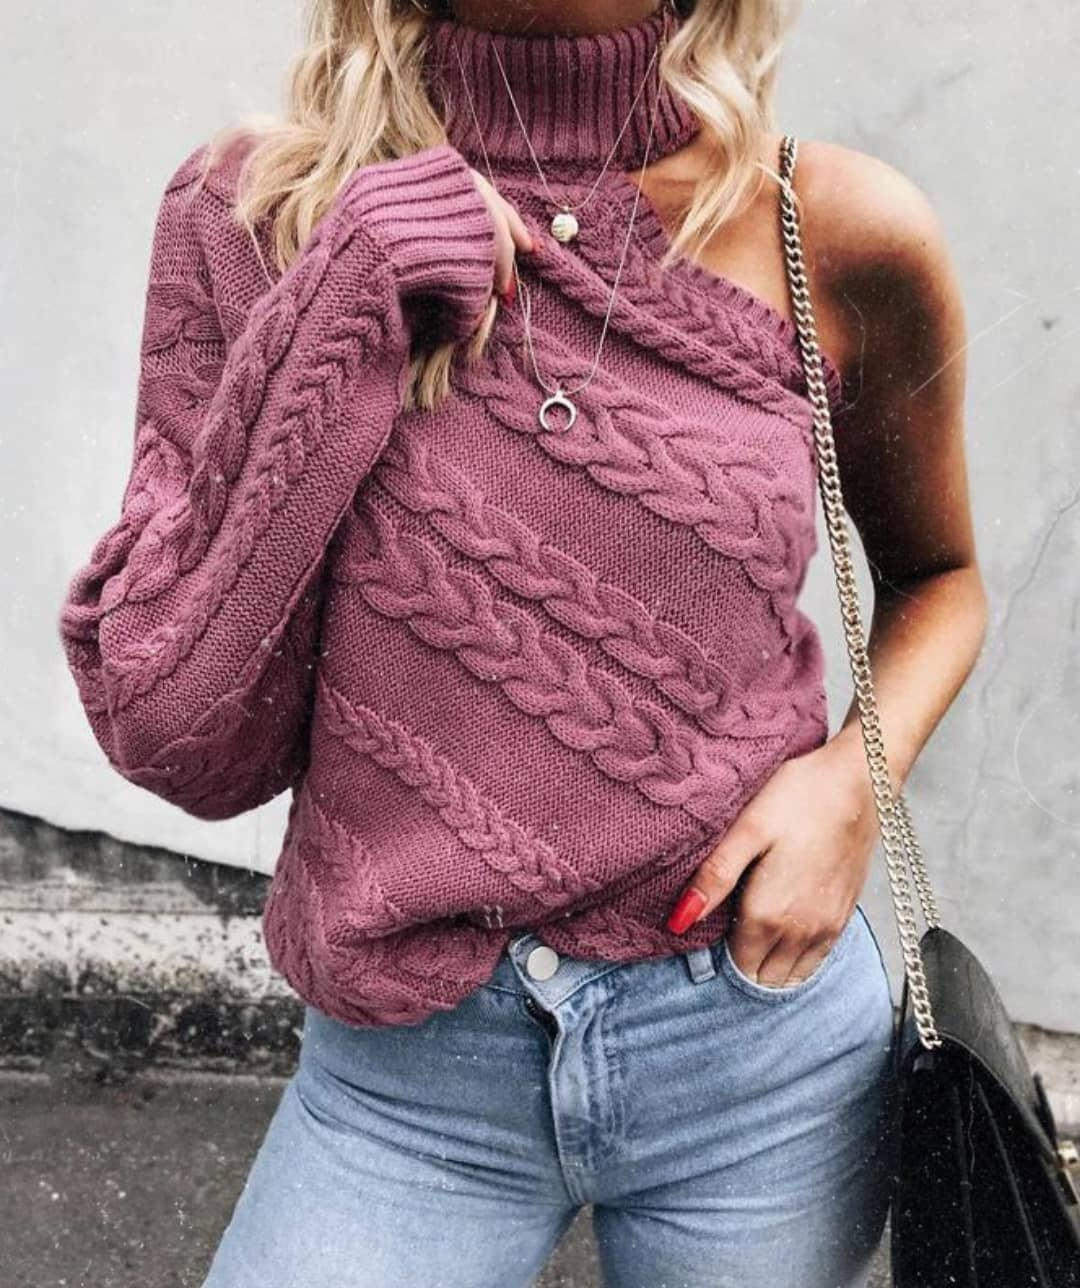 One-Sleeve Turtleneck Sweater In Pink Color For Spring Months 2020